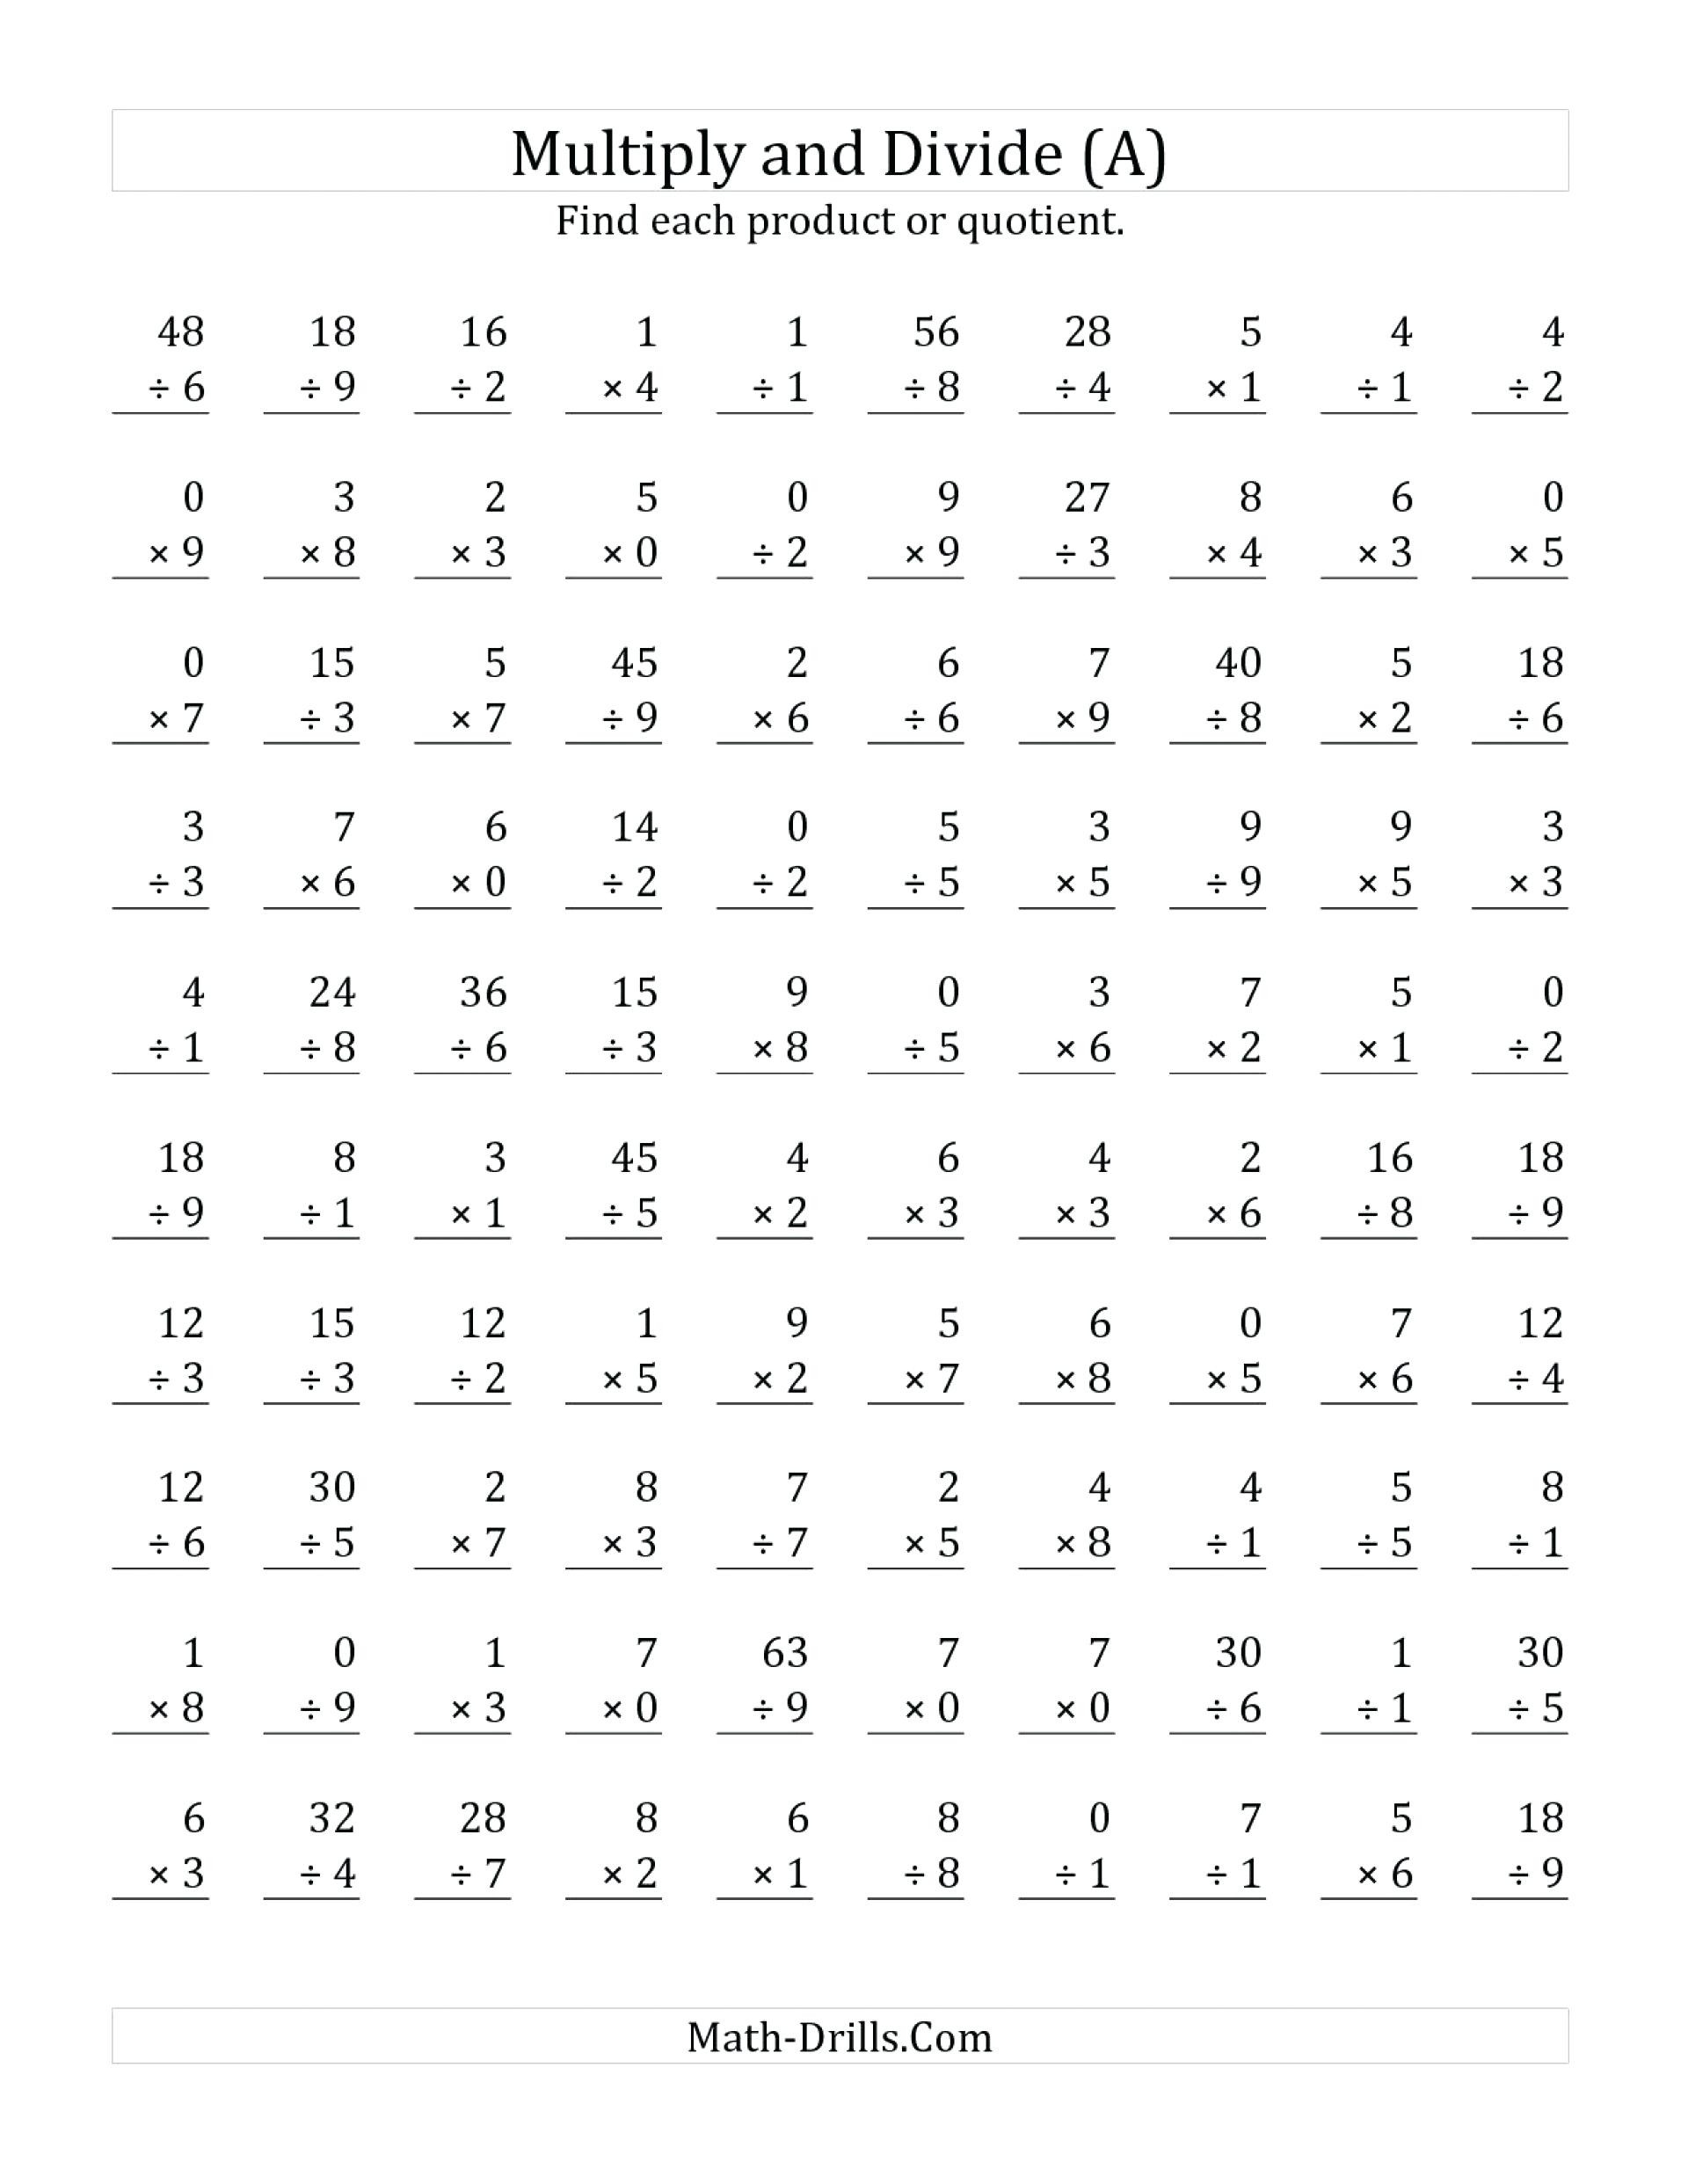 4 Free Math Worksheets First Grade 1 Counting Money